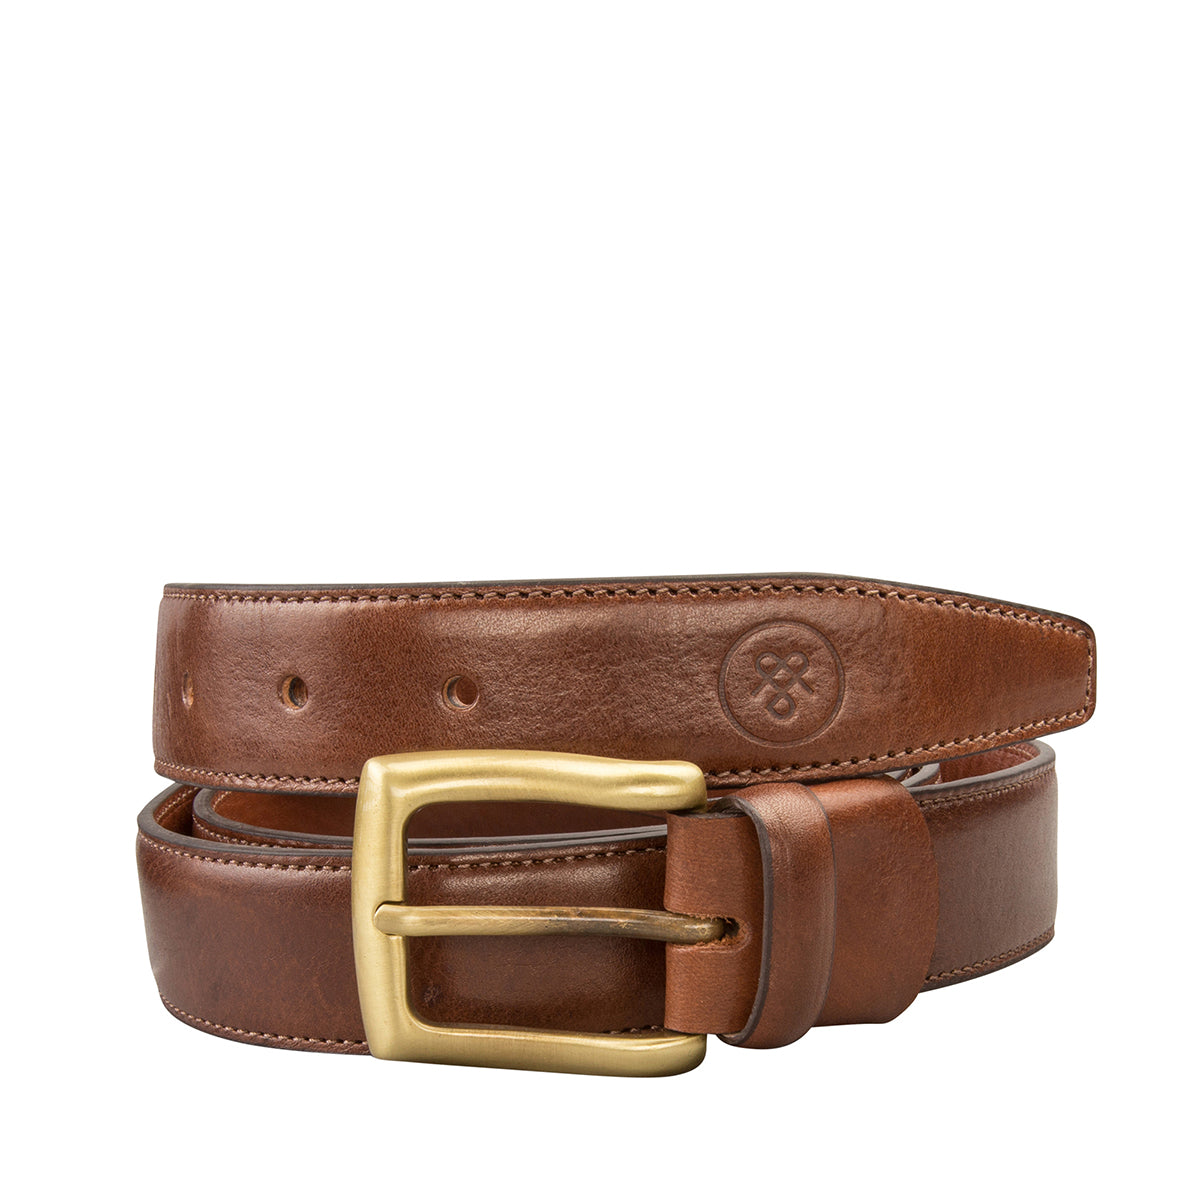 Image 1 of the 'Gianni' Chestnut Veg-Tanned Leather Handmade Belt